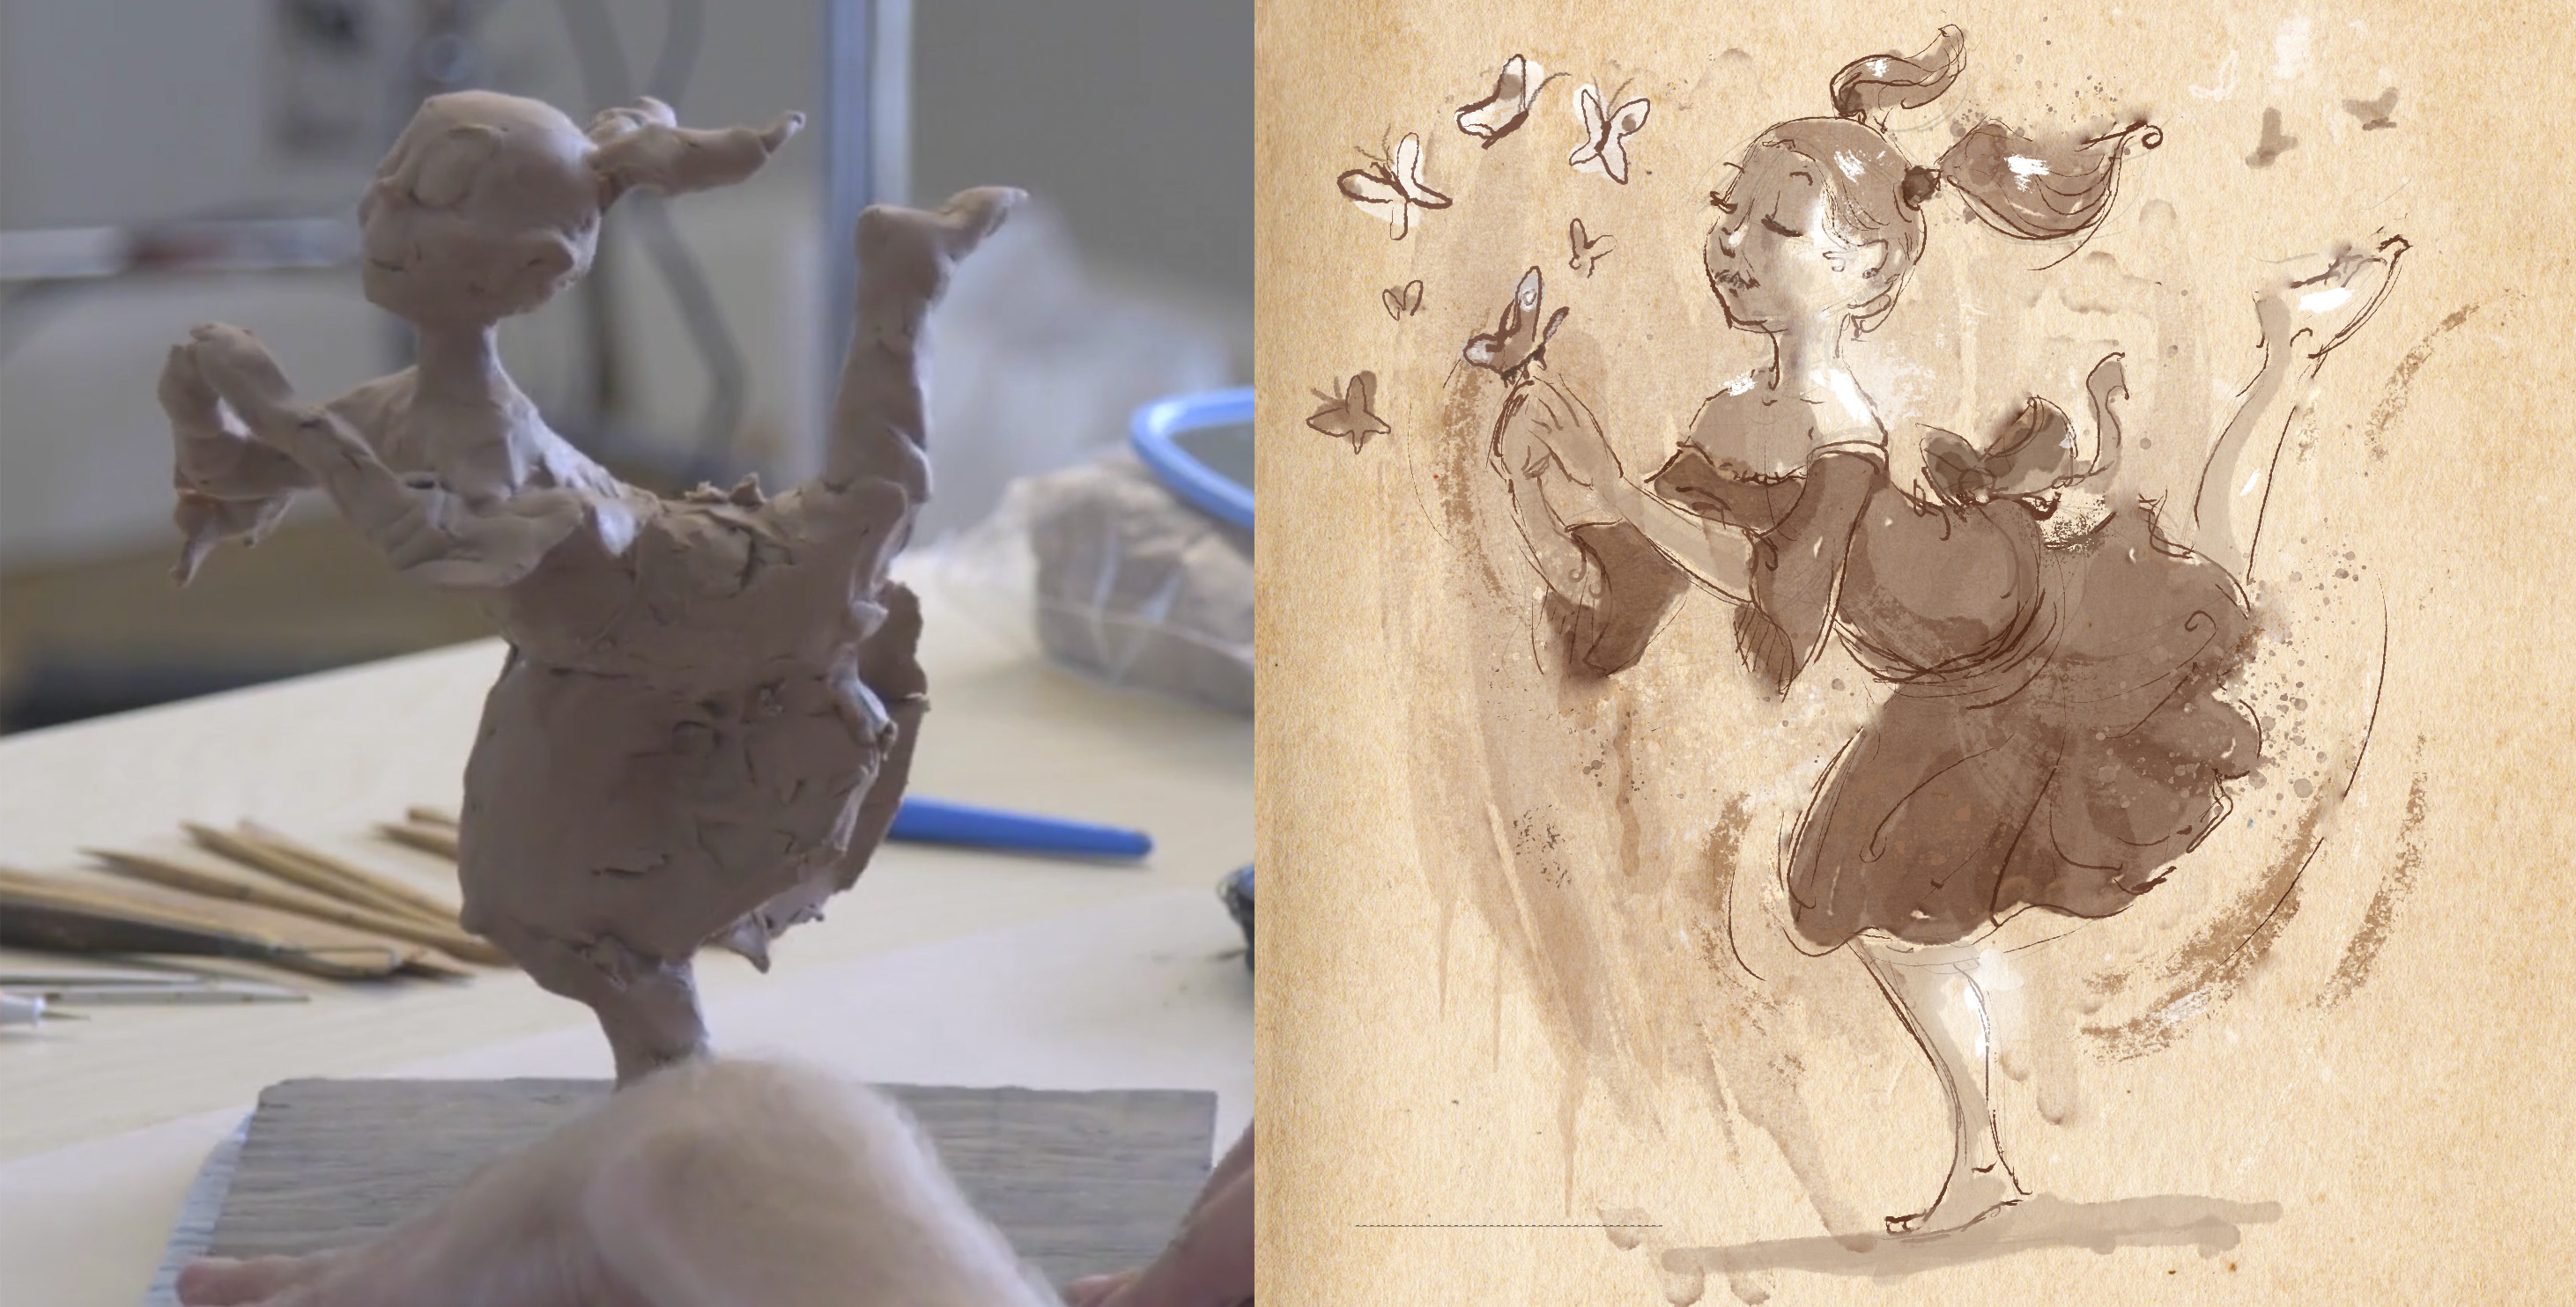 0_1497292670903_Scupture drawing side by side.jpg